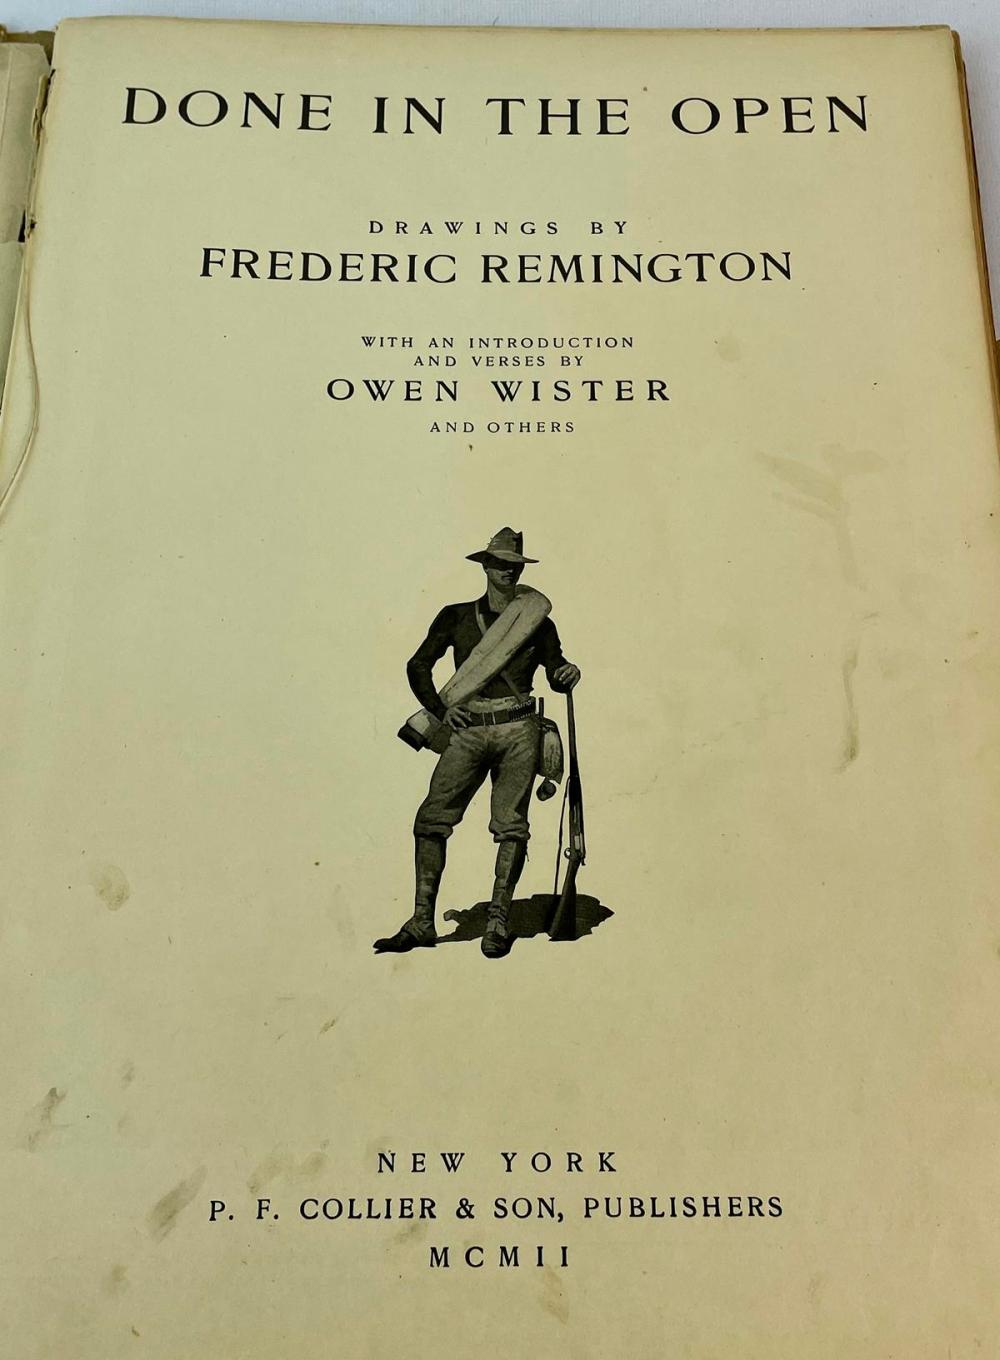 1902 Done in The Open Drawings by Frederic Remington